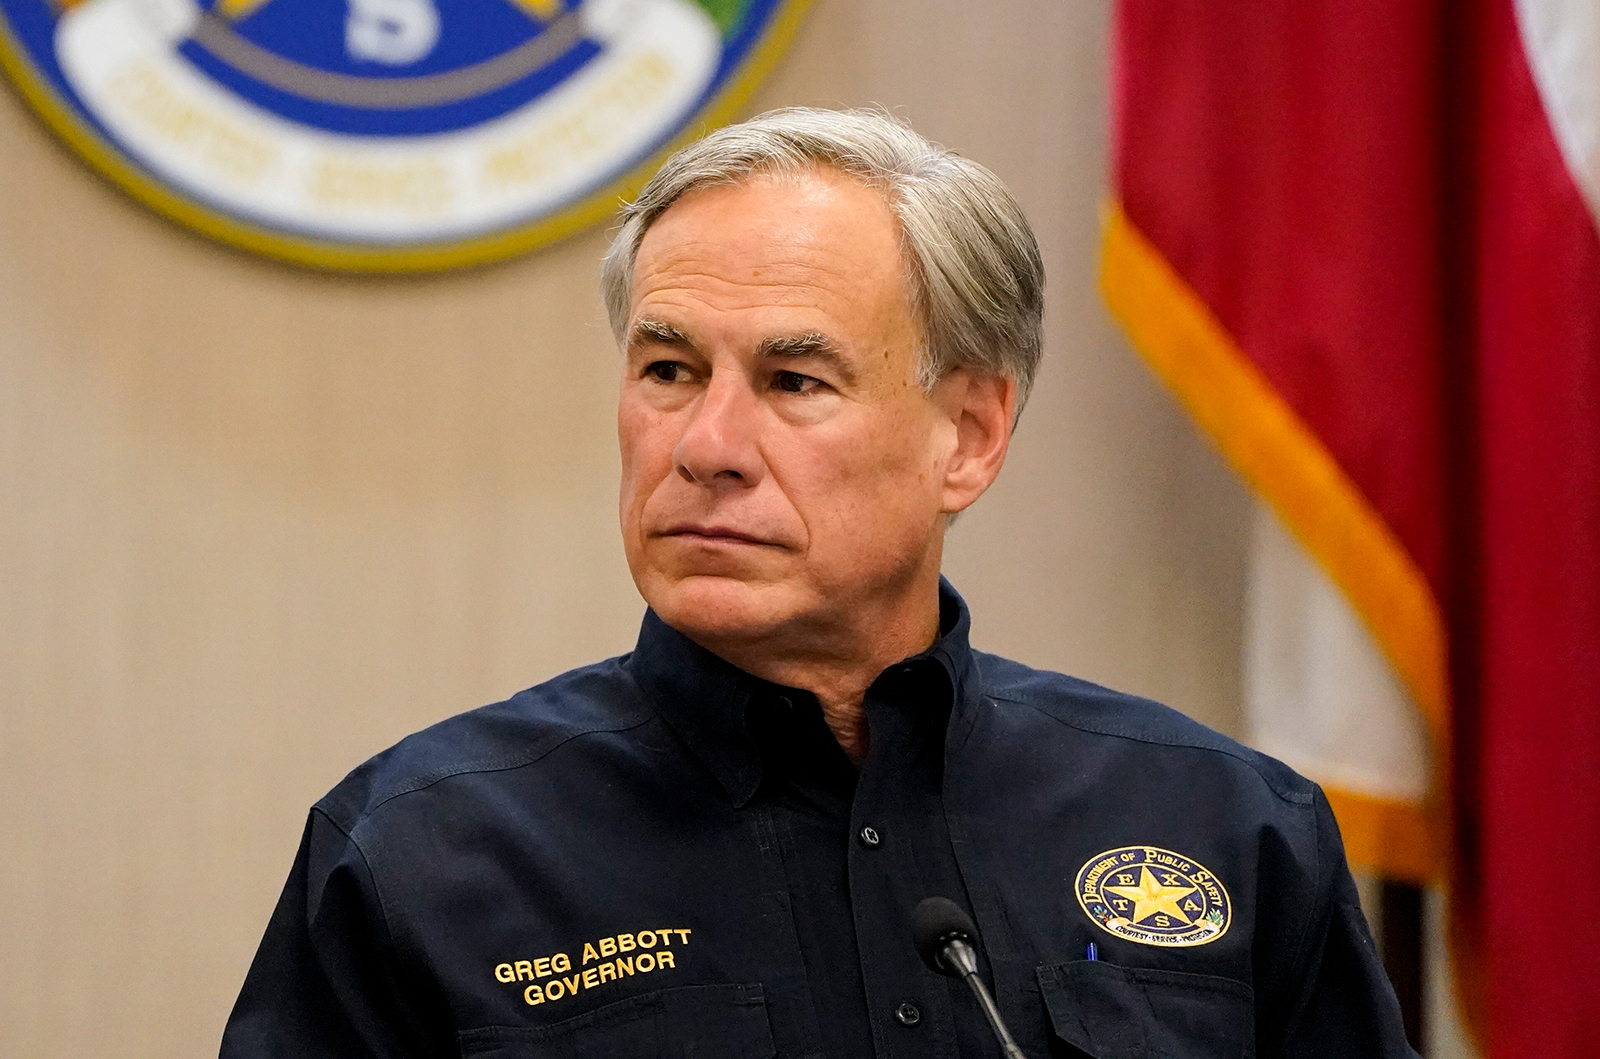 Texas Governor Greg Abbott attends a security briefing with former President Donald Trump and state officials and law enforcement at the Weslaco Department of Public Safety DPS Headquarters on June 30 in Weslaco, Texas.